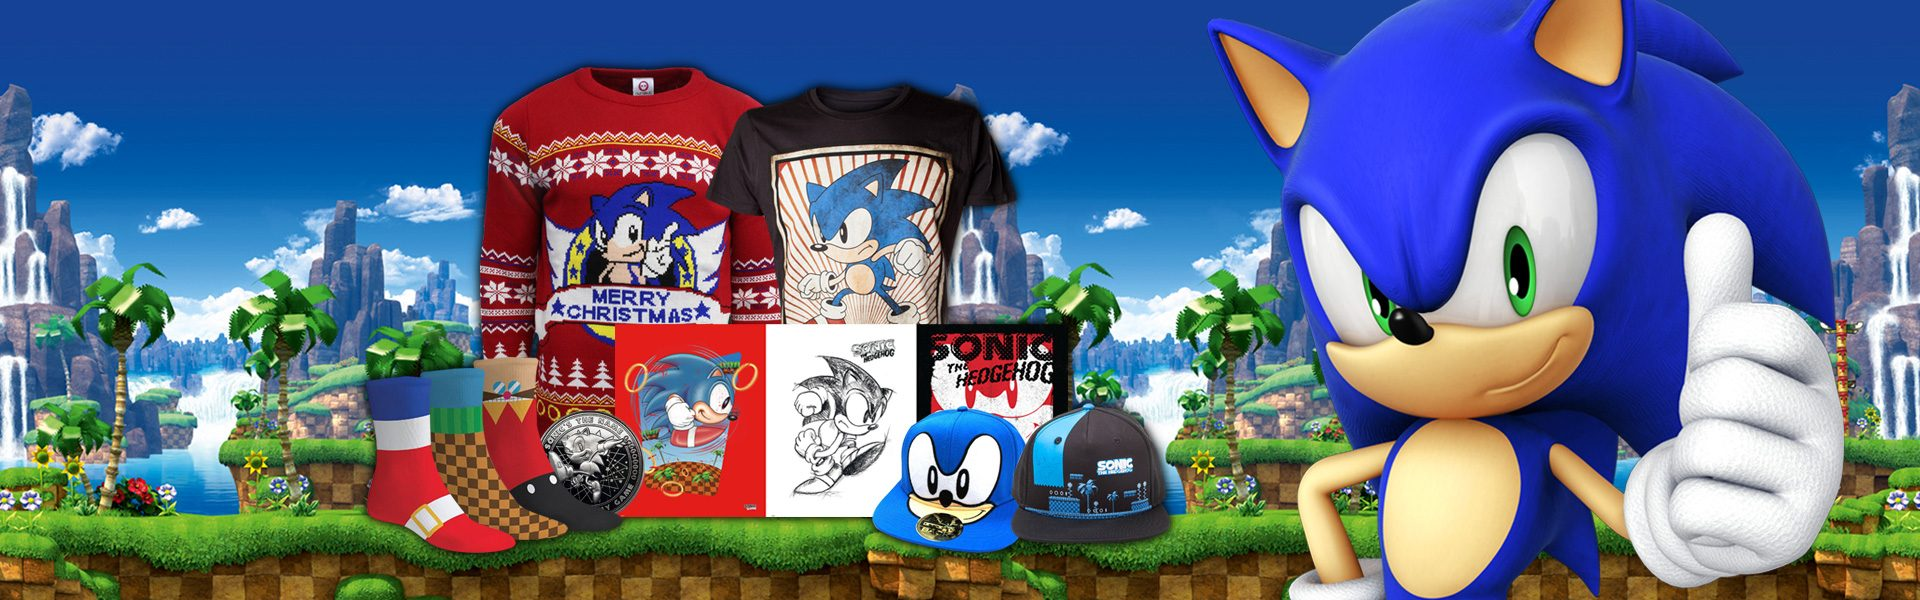 New Sonic The Hedgehog Merchandise Dashes Onto Playstation Gear Playstation Blog